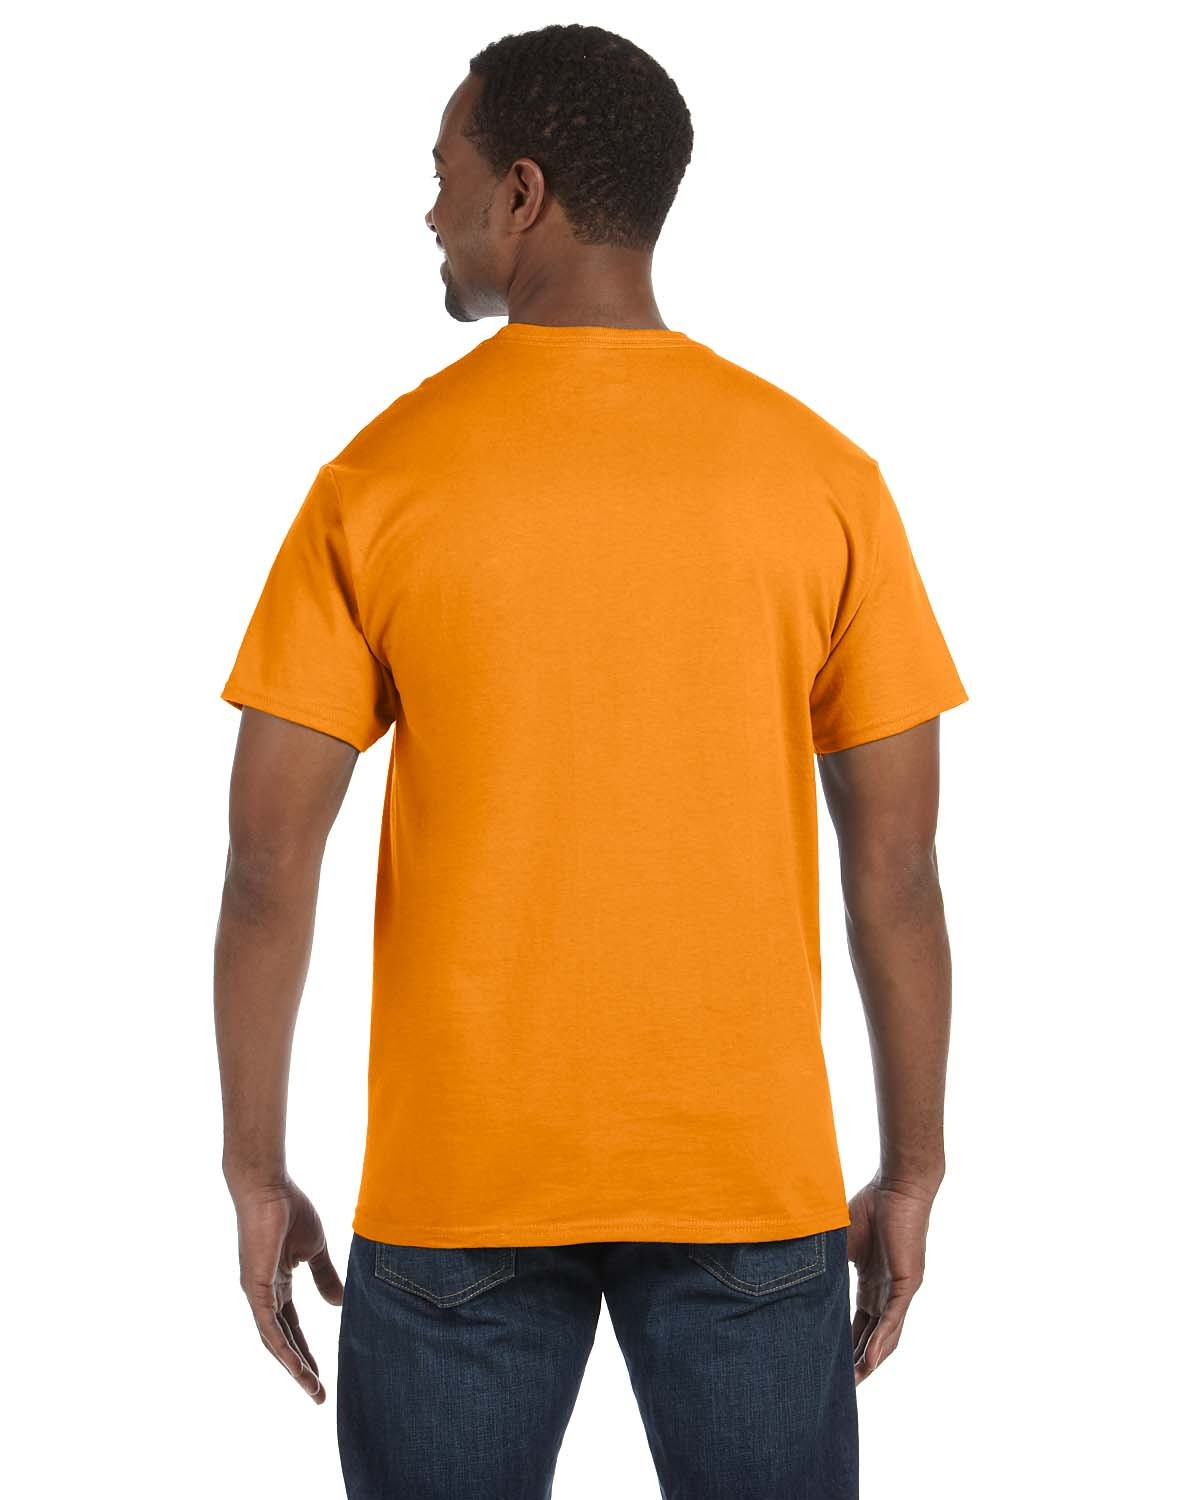 5250T Hanes SAFETY ORANGE